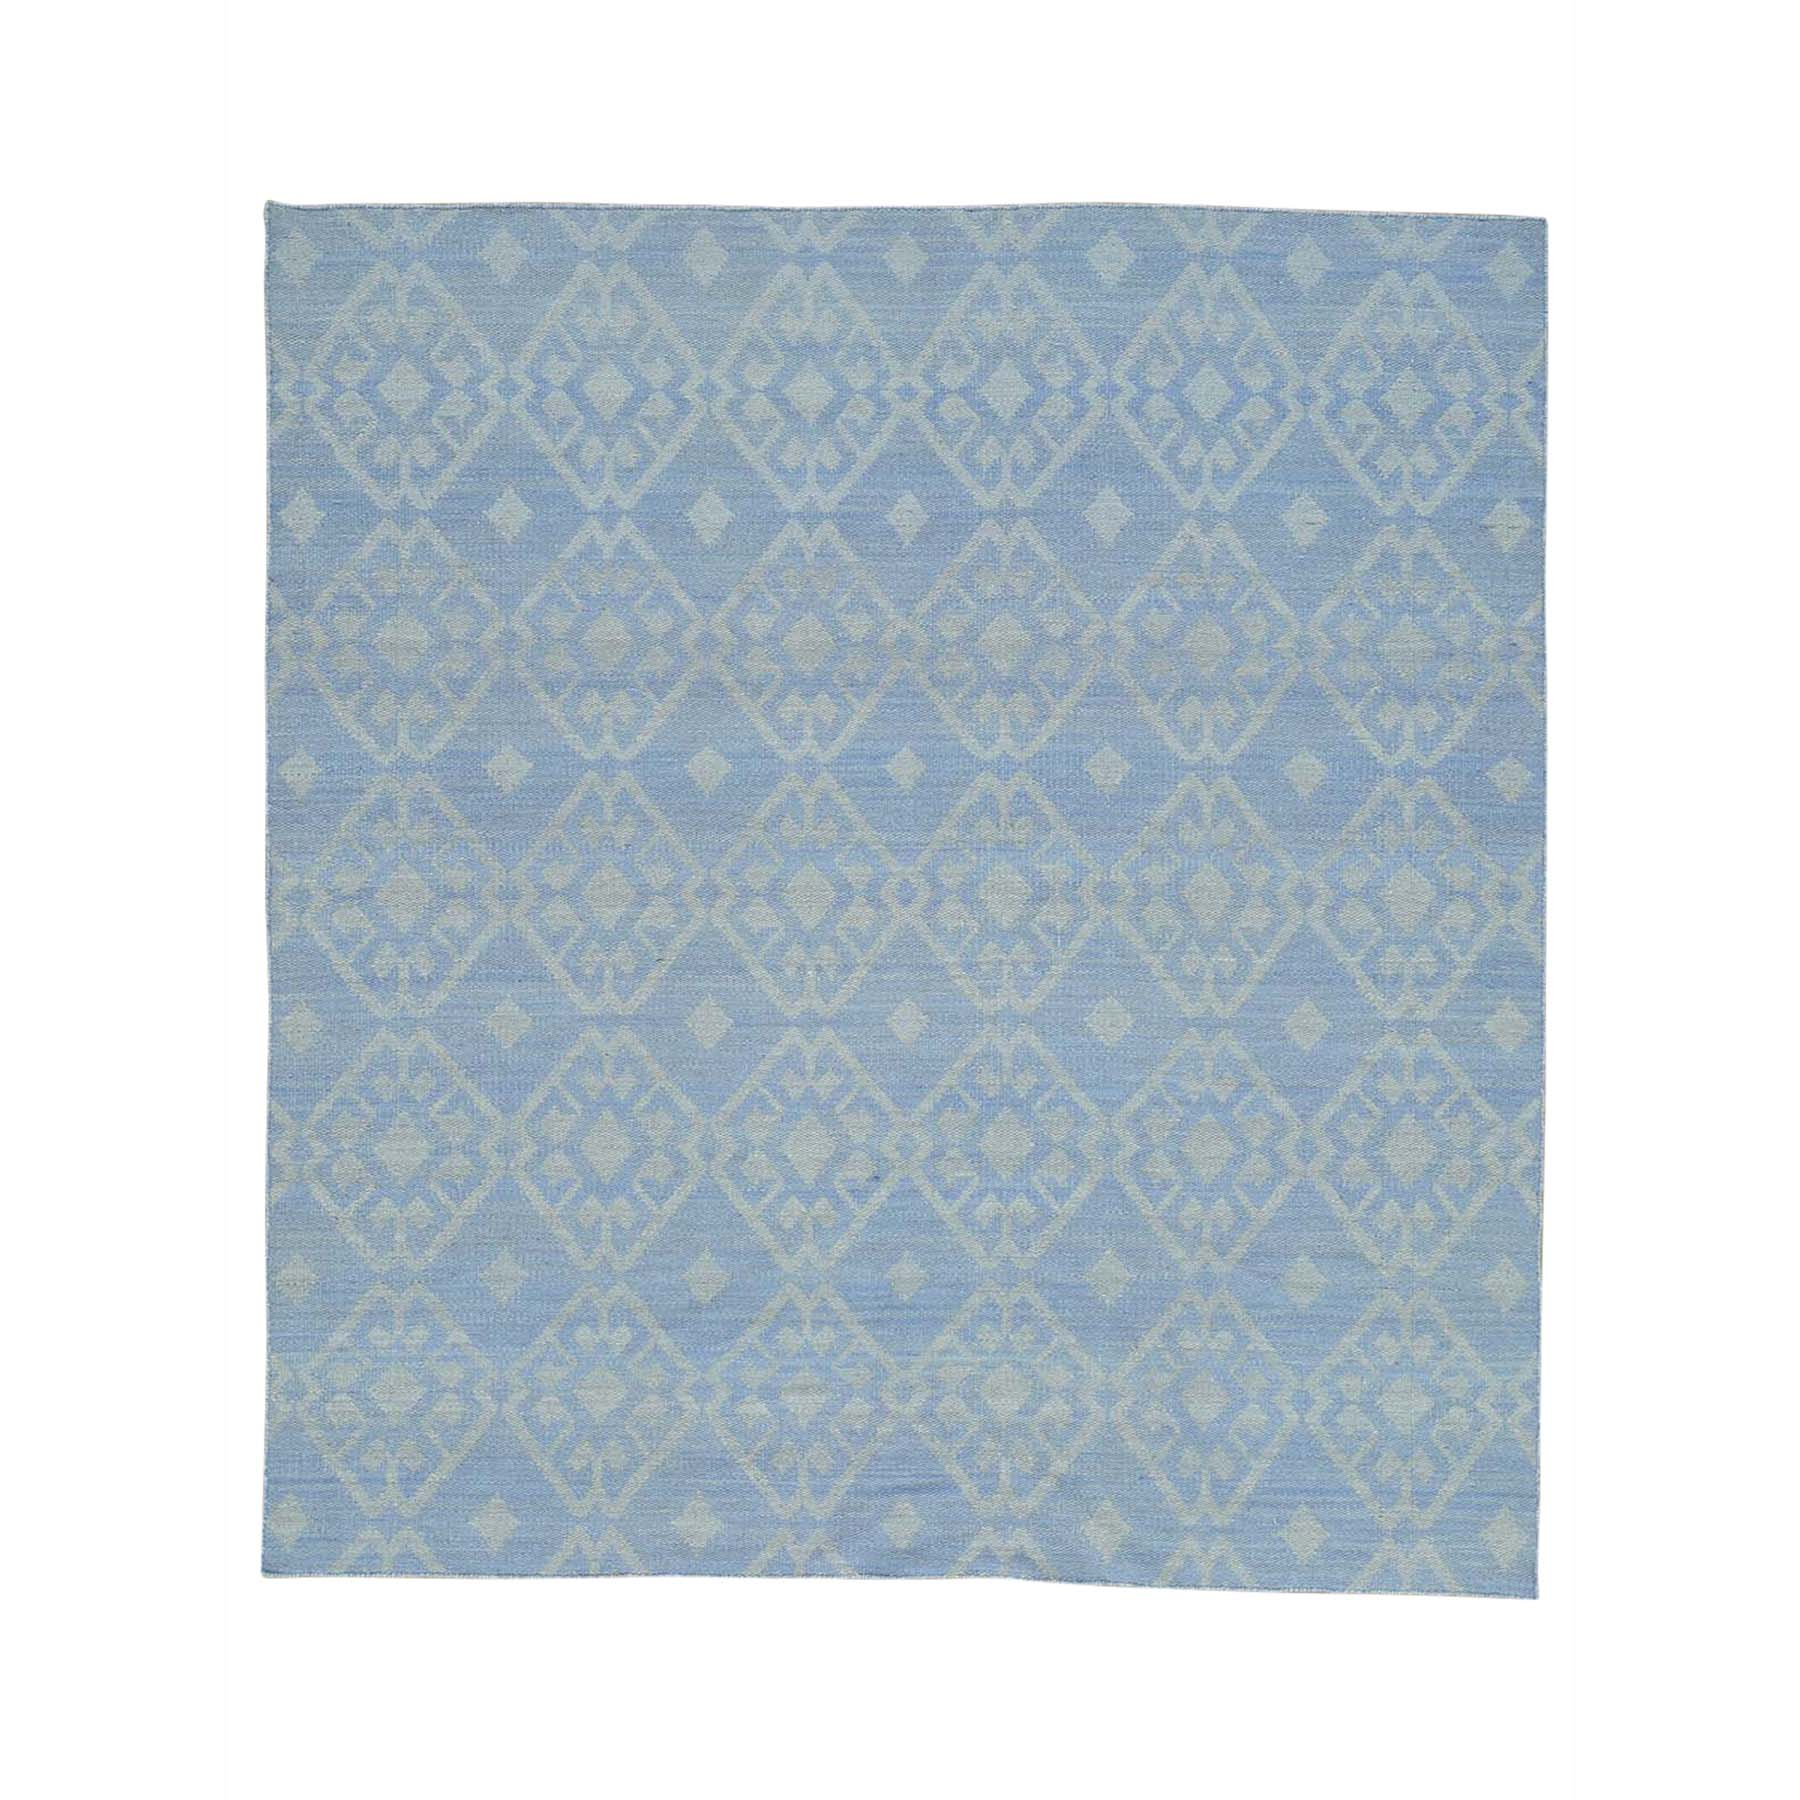 Fine Kilim Collection Hand Woven Blue Rug No: 172570